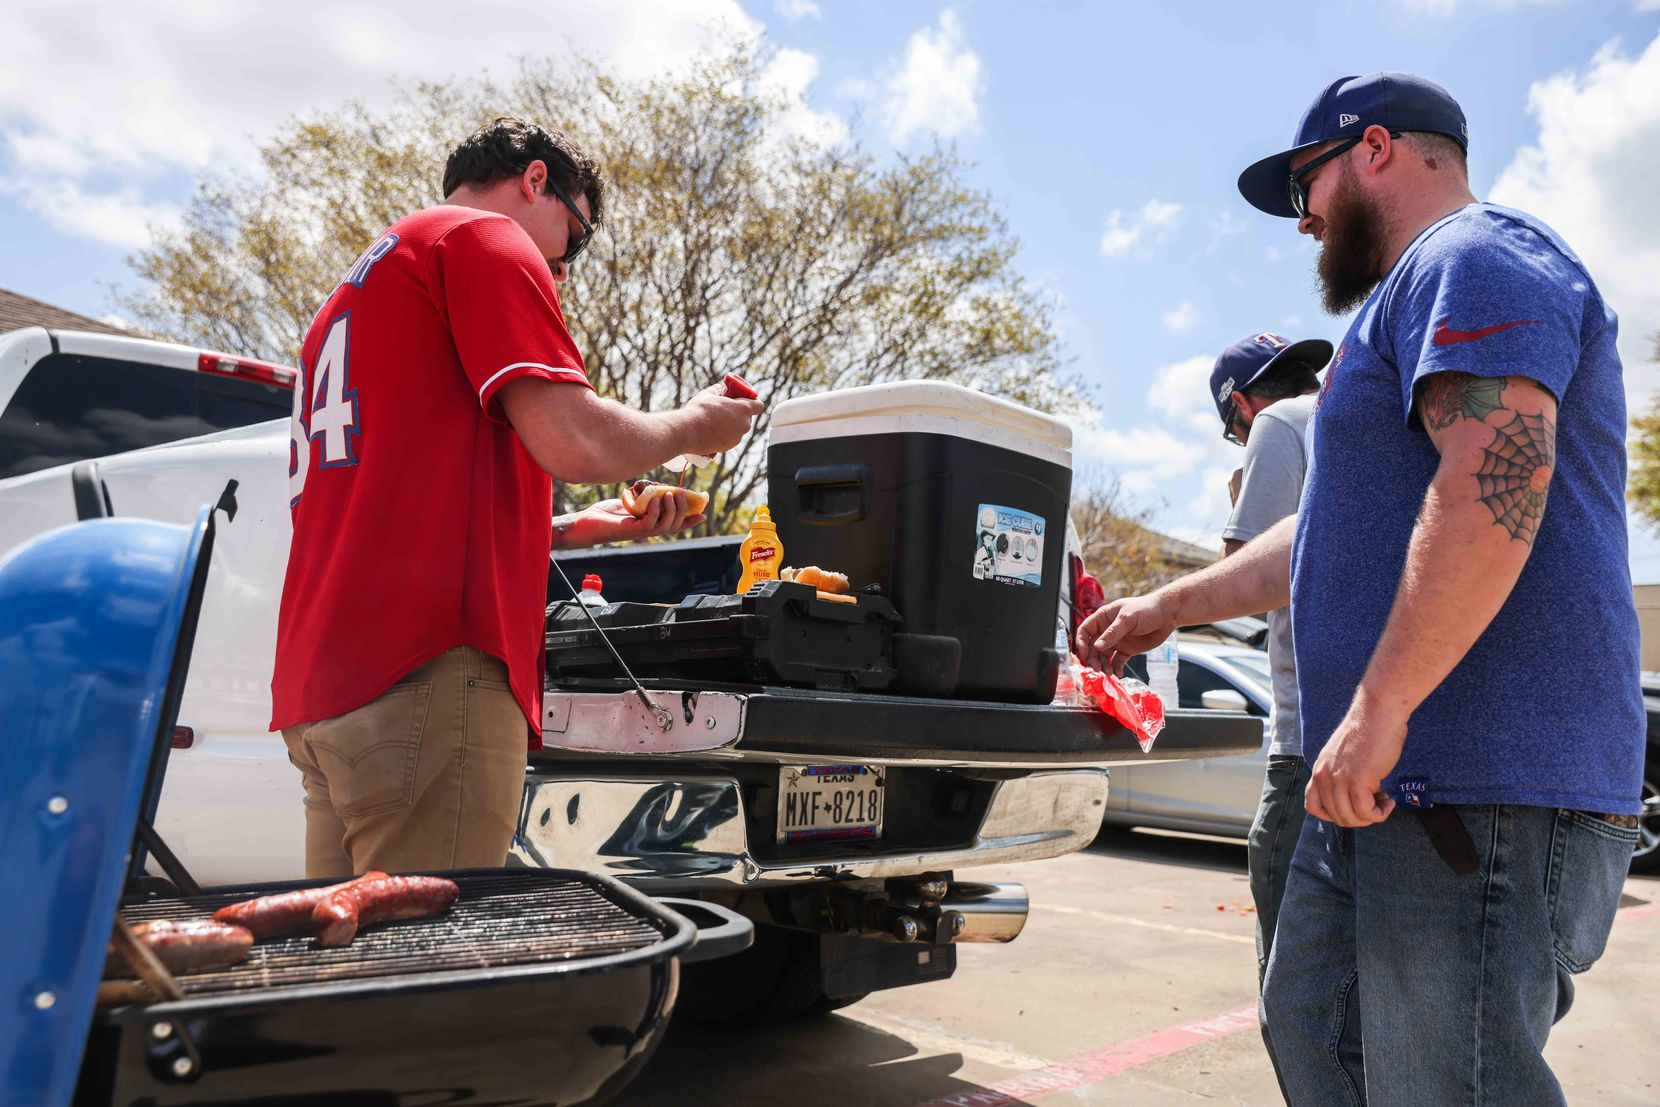 From left Dylan Huerta, Beau Wyse and Kary Krafve get a meal outside the Globe Life Field before the game between Texas Rangers and Toronto Blue Jays on opening day in Arlington, Texas on Monday, April 5, 2021. (Lola Gomez/The Dallas Morning News)